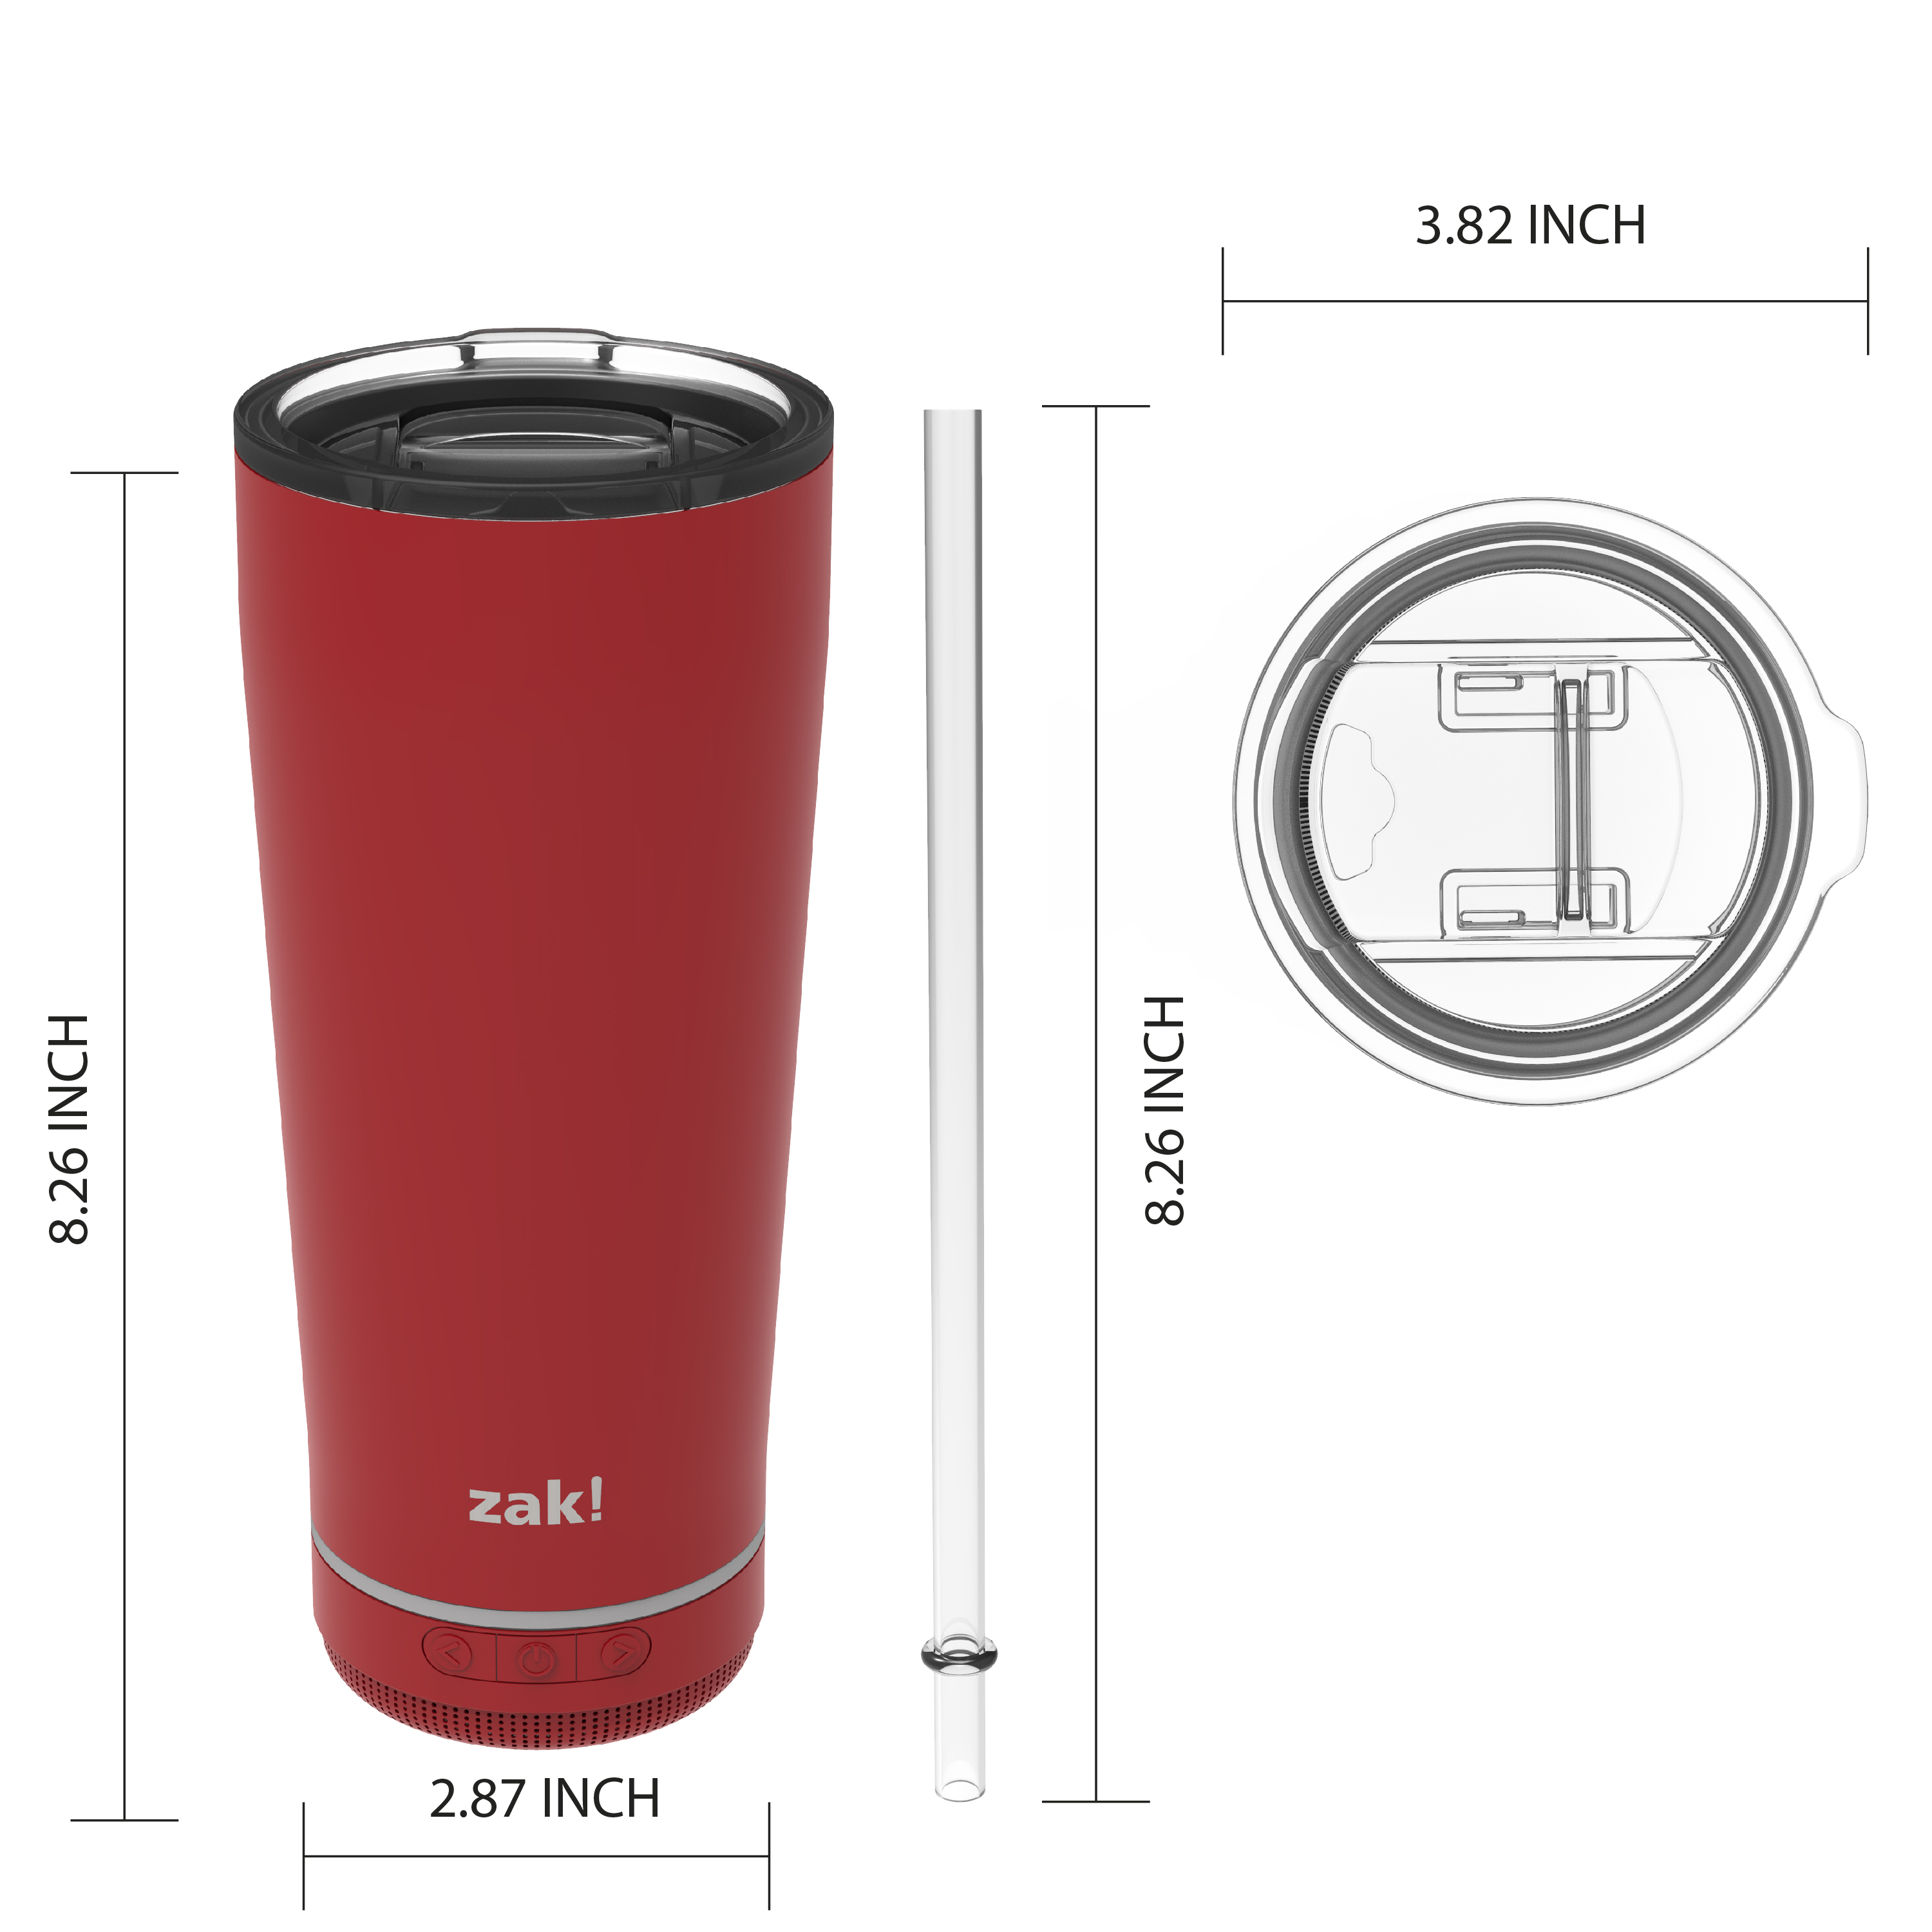 Zak Play 18 ounce Stainless Steel Tumbler with Bluetooth Speaker, Red slideshow image 2